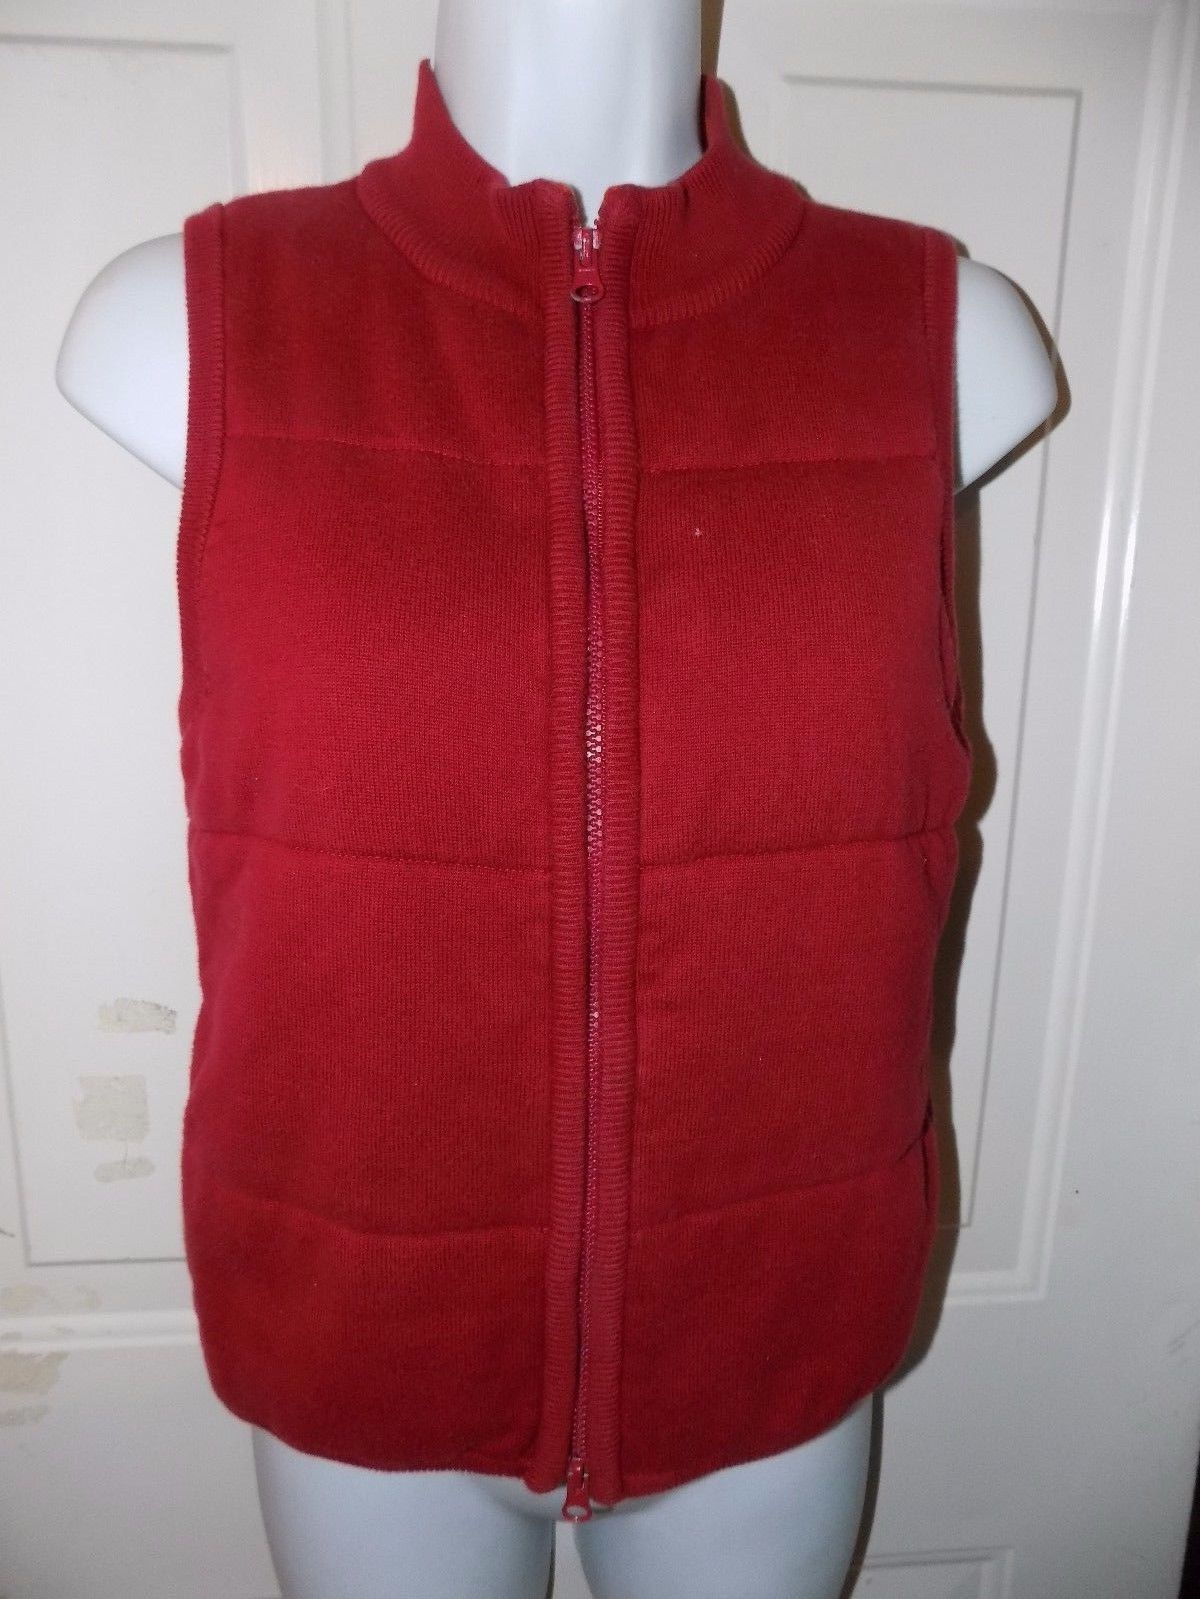 Primary image for AMERICAN EAGLE OUTFITTERS RED ZIP UP VEST SIZE S EUC